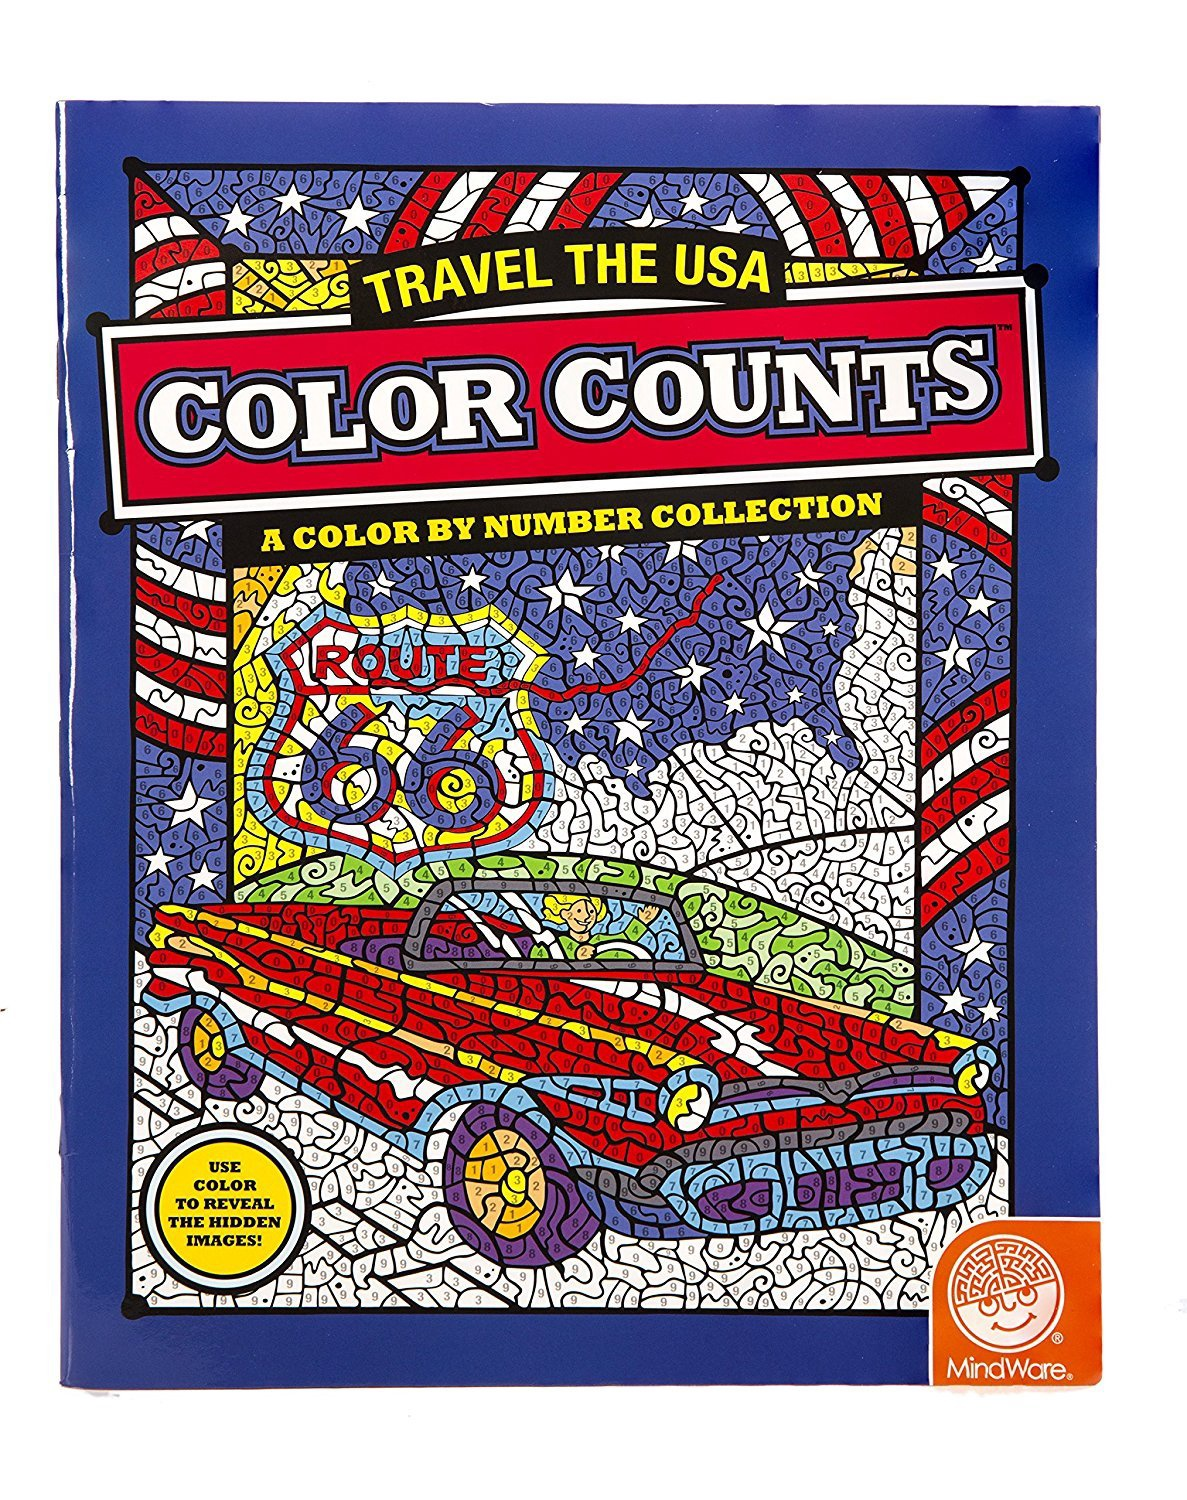 X MW 62004 COLOR COUNTS TRAVEL THE USA